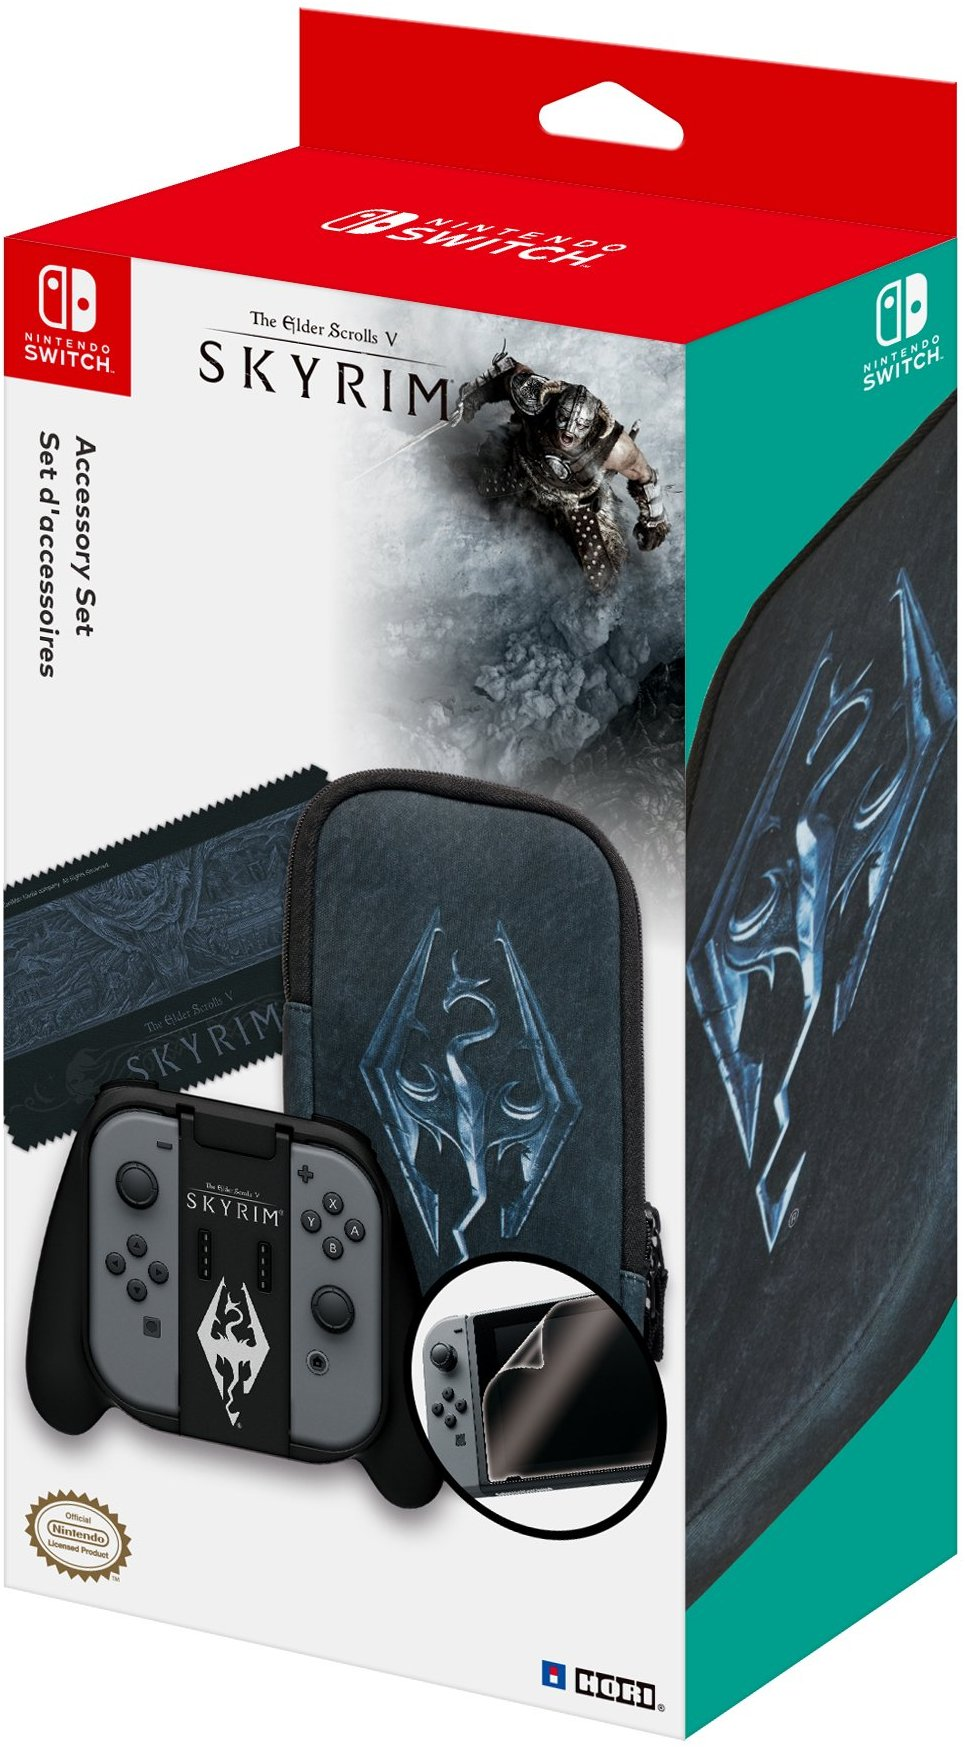 Switch is getting an official Skyrim accessory set